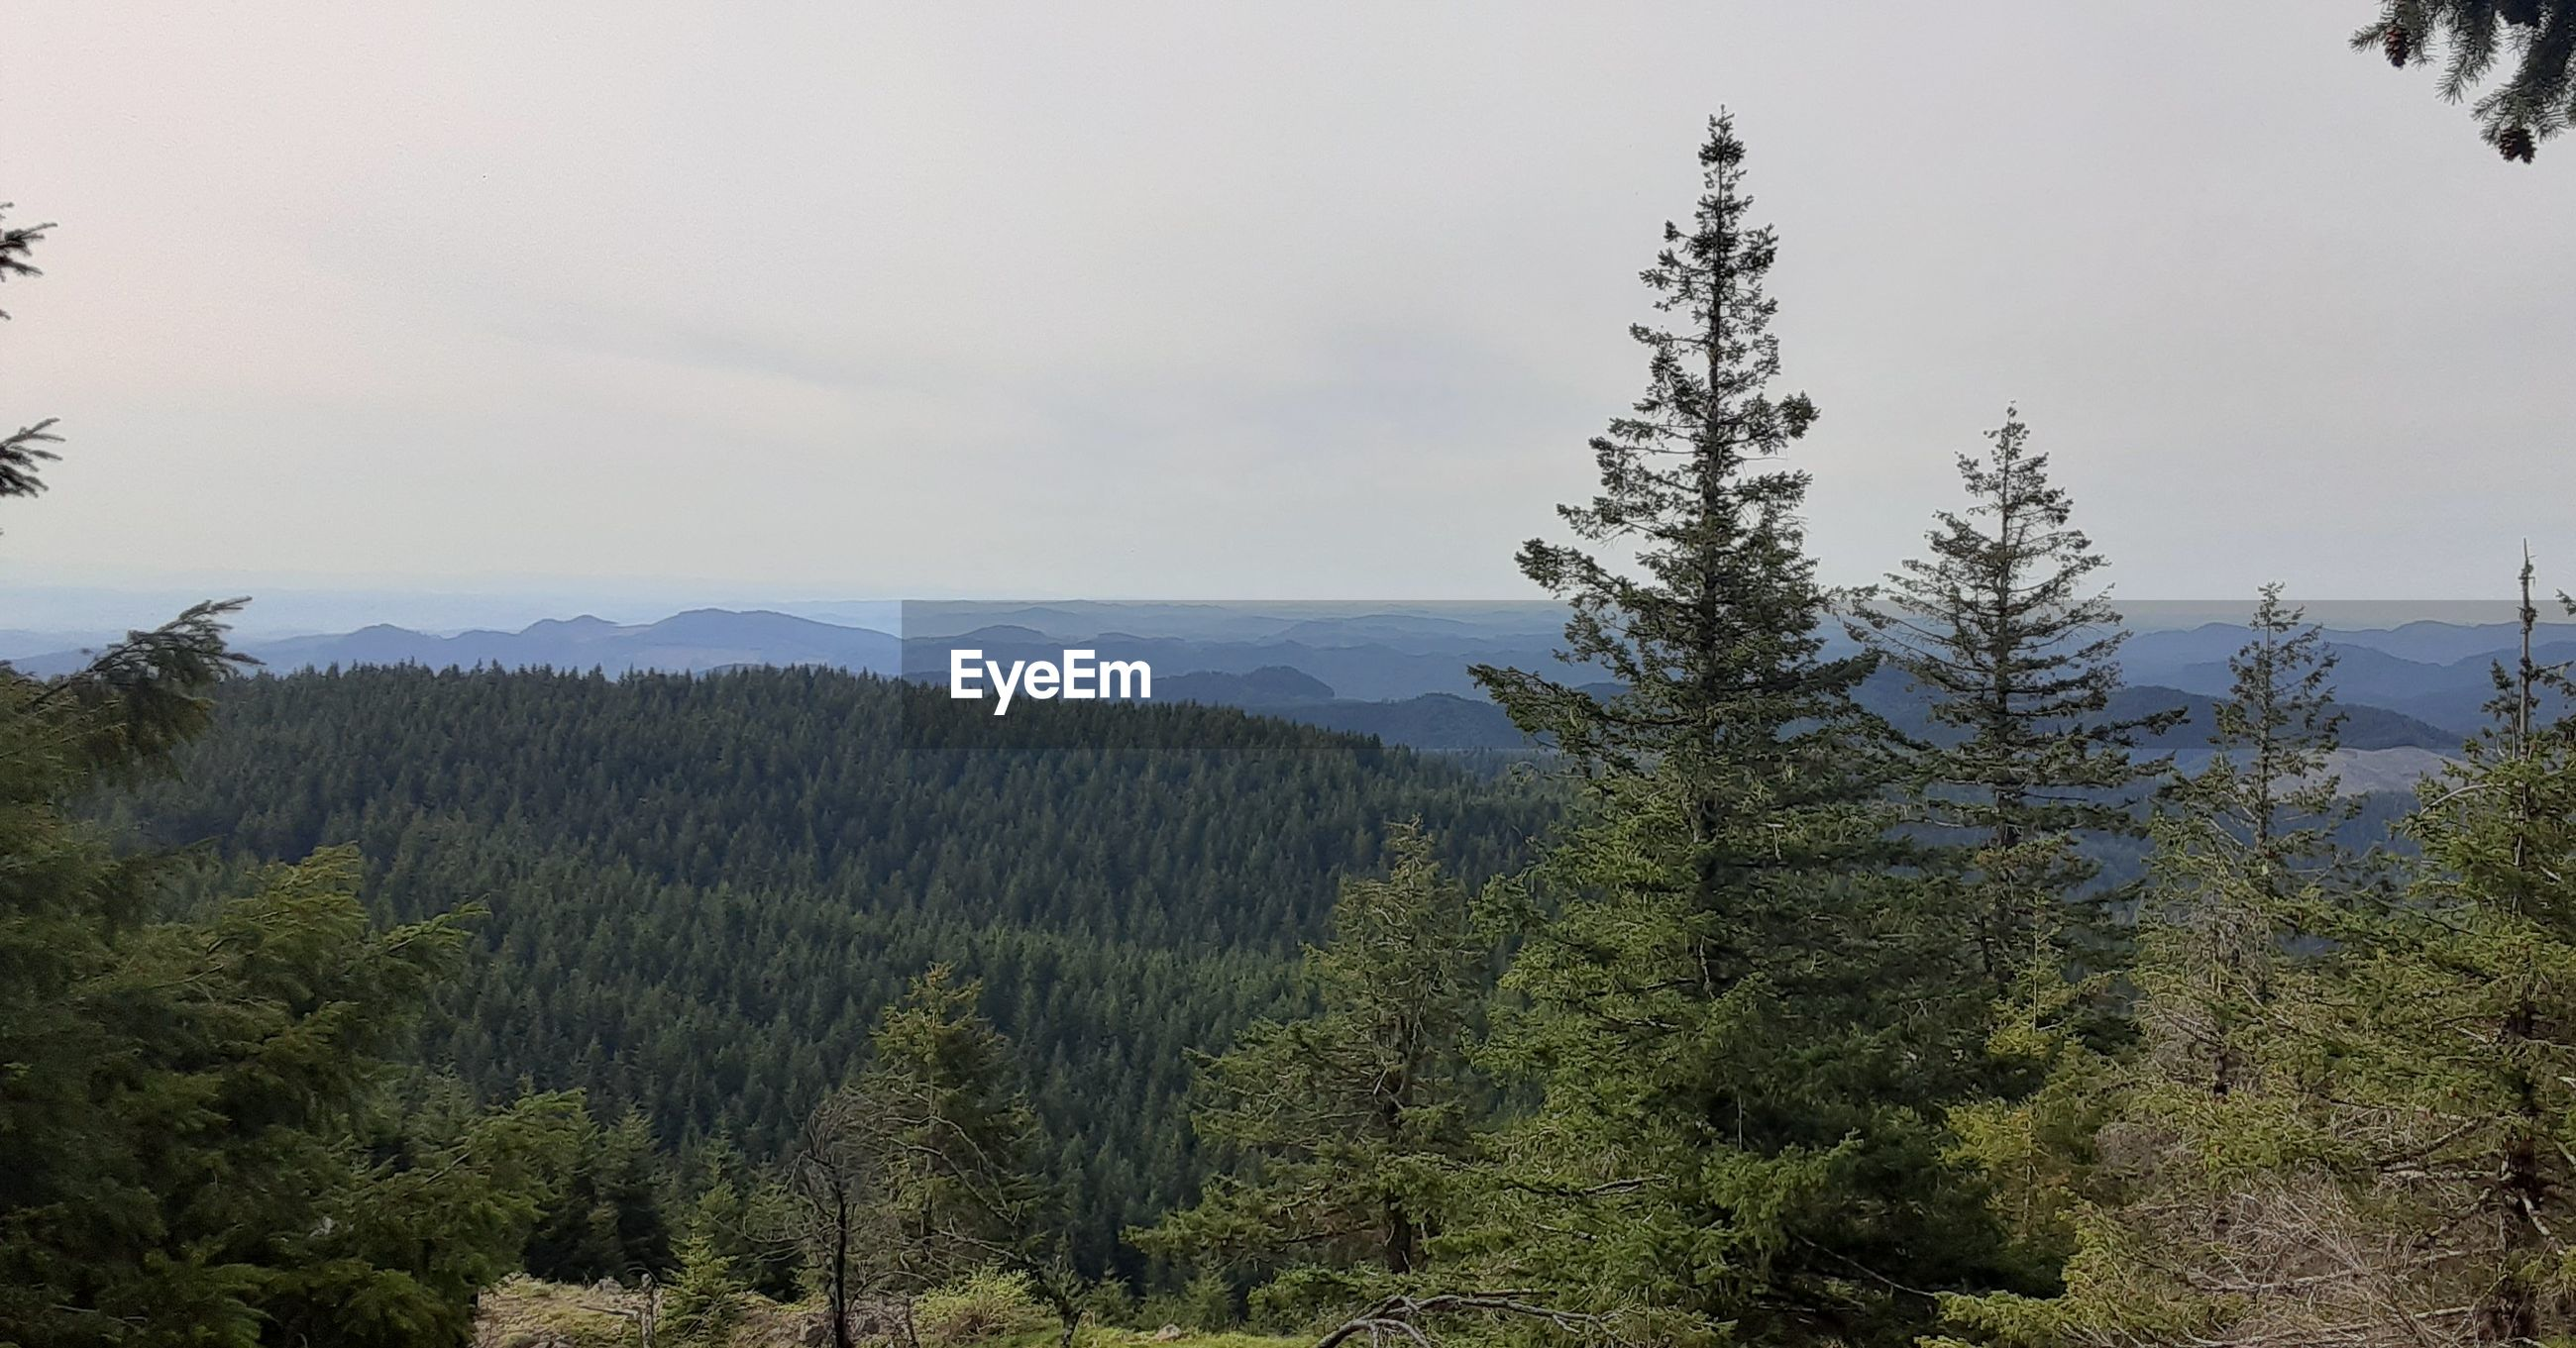 VIEW OF PINE TREES IN FOREST